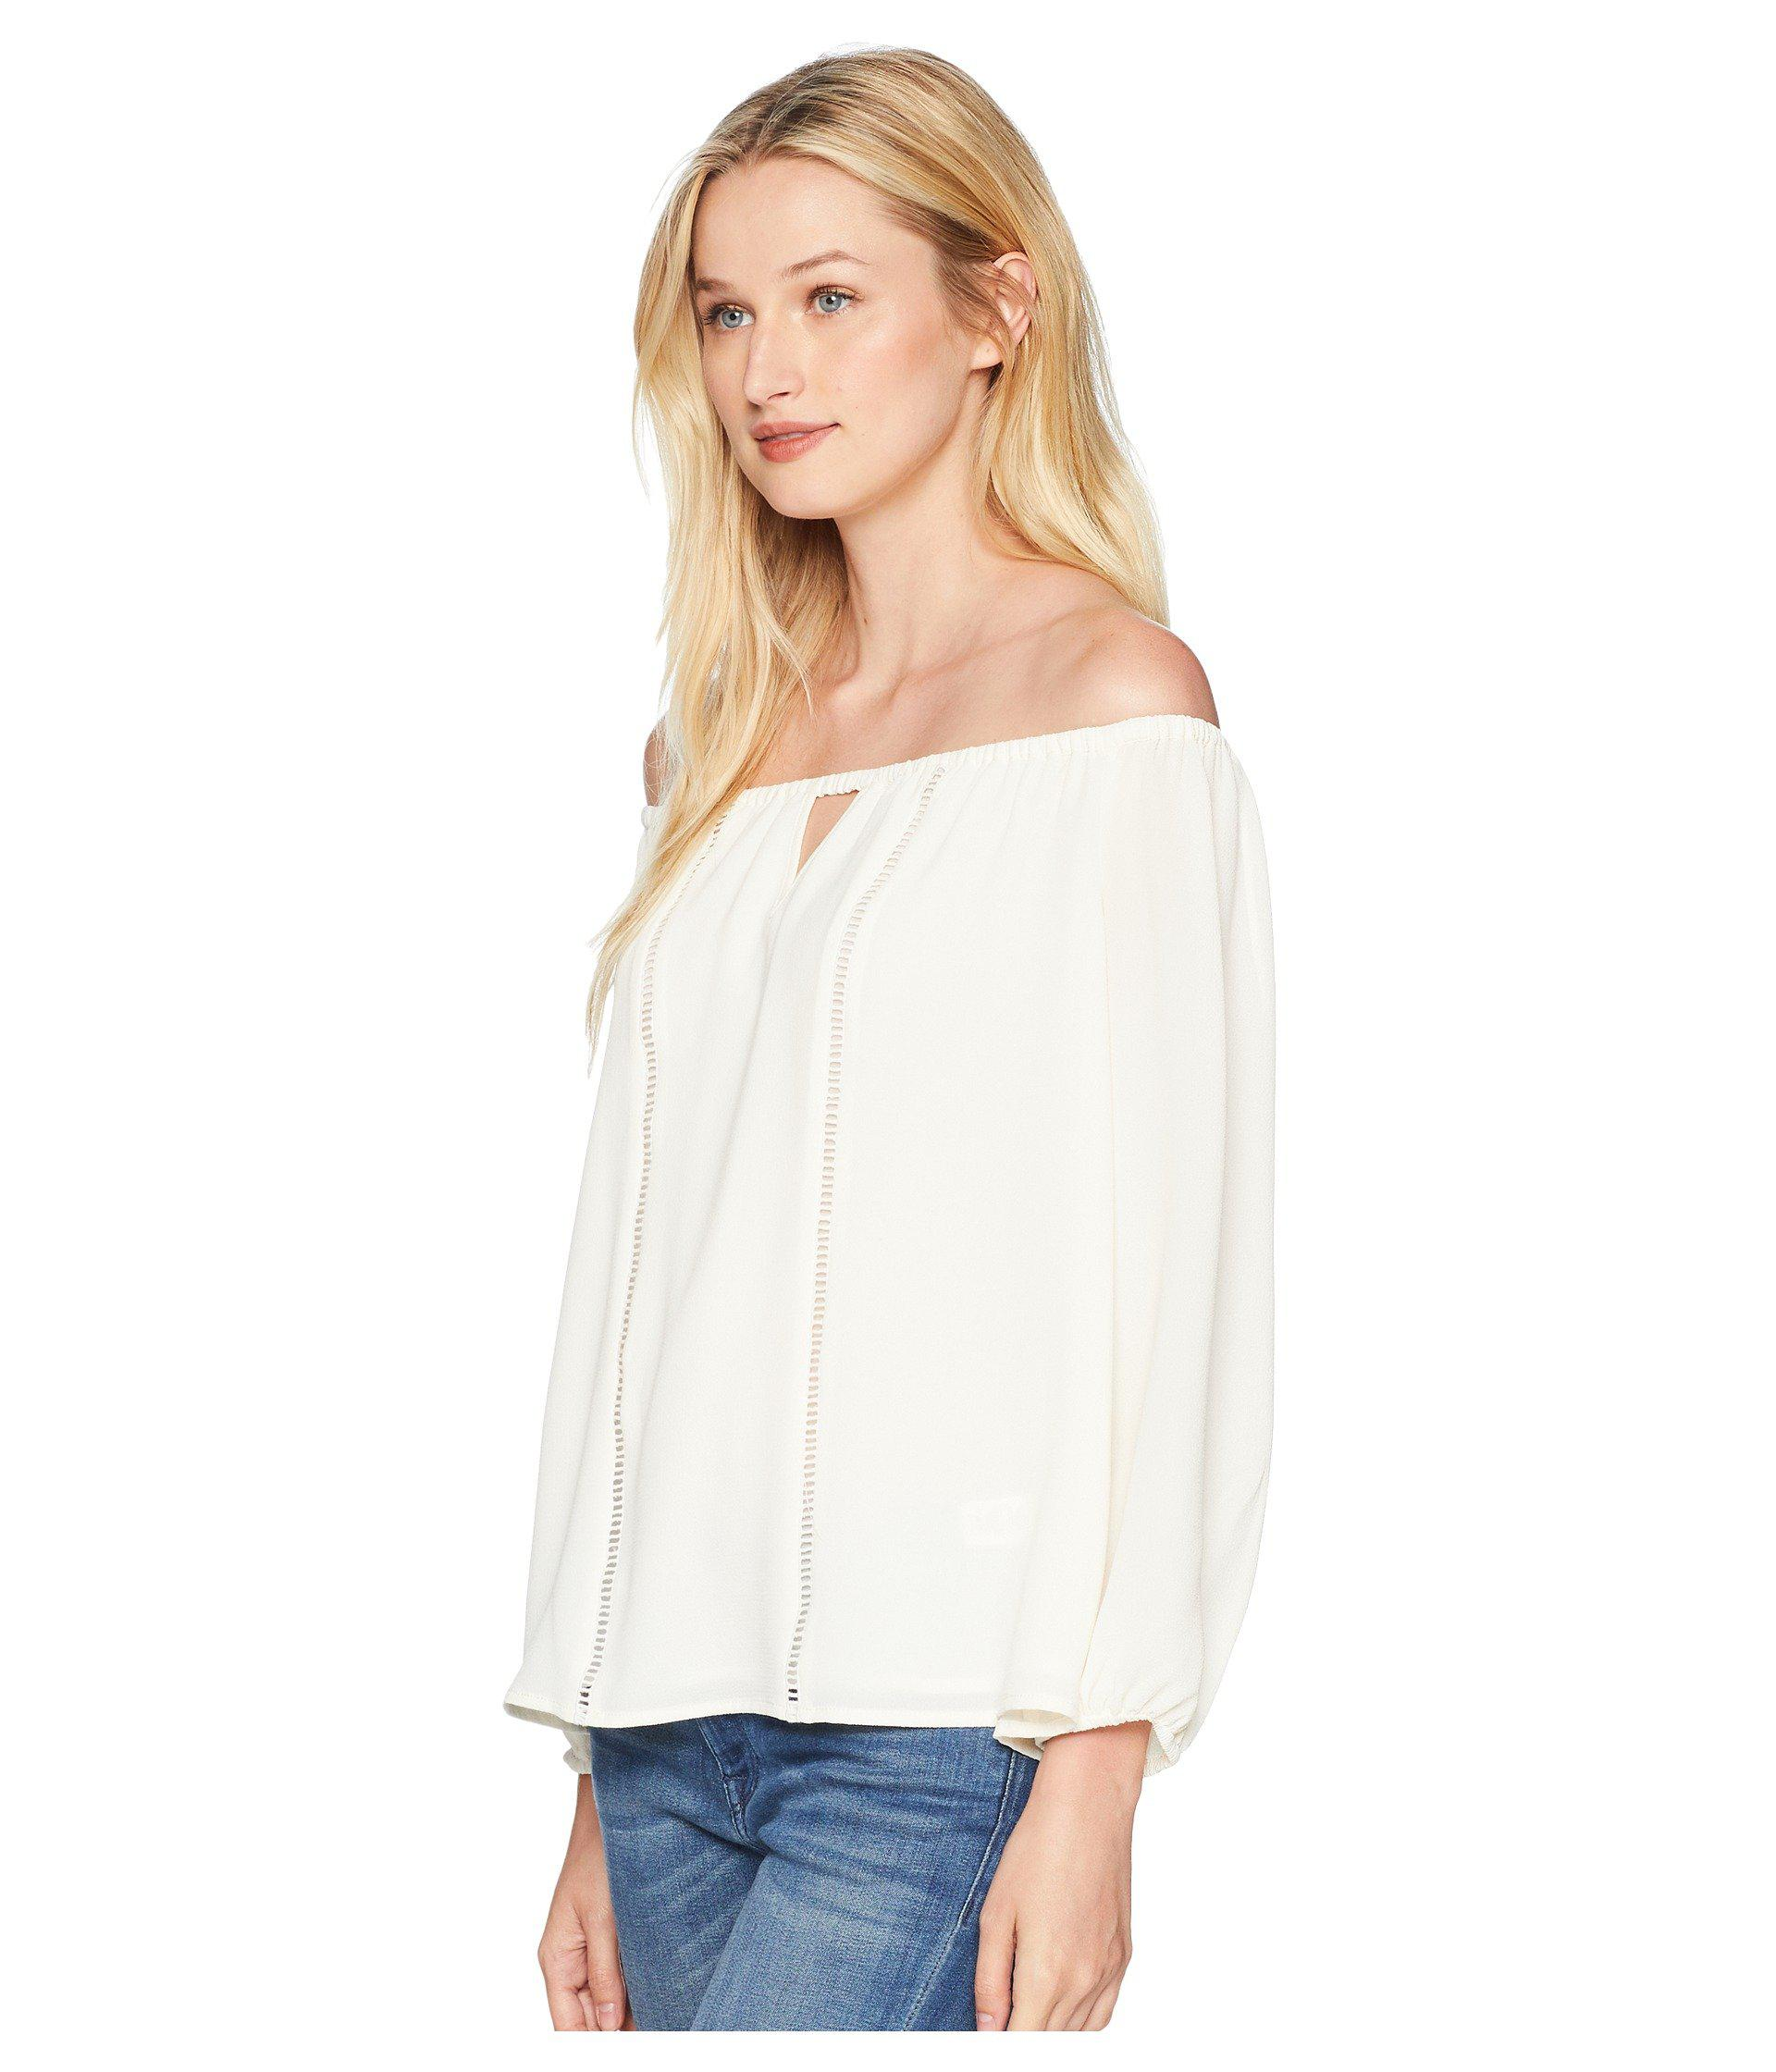 ef040b3daa6e97 Lyst - Cece 3 4 Sleeve Off The Shoulder Blouse With Faggoting in White -  Save 56%